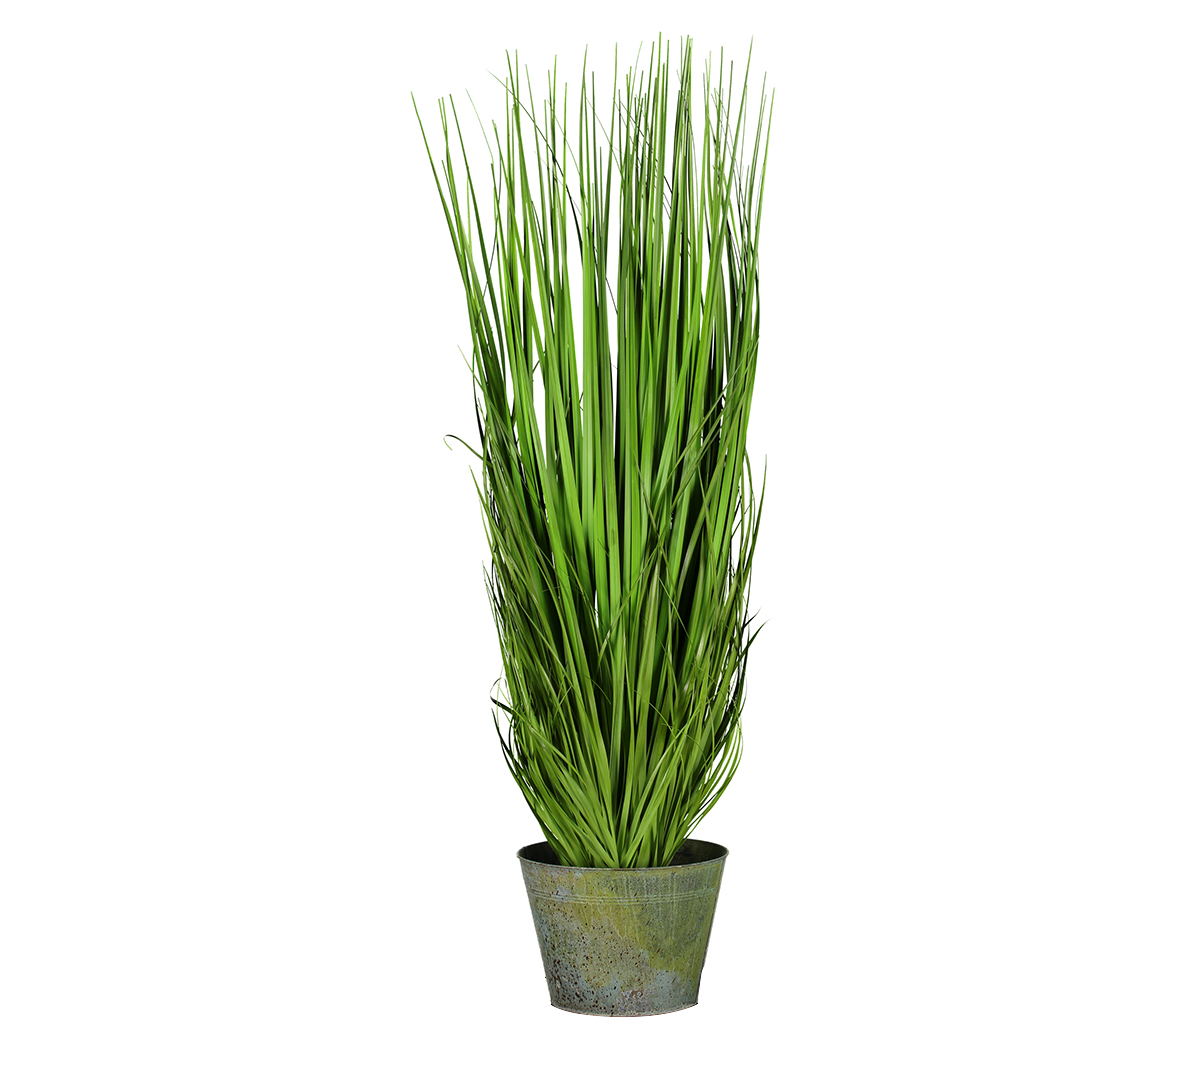 LS Artificial Grass With Metal Pot 54in